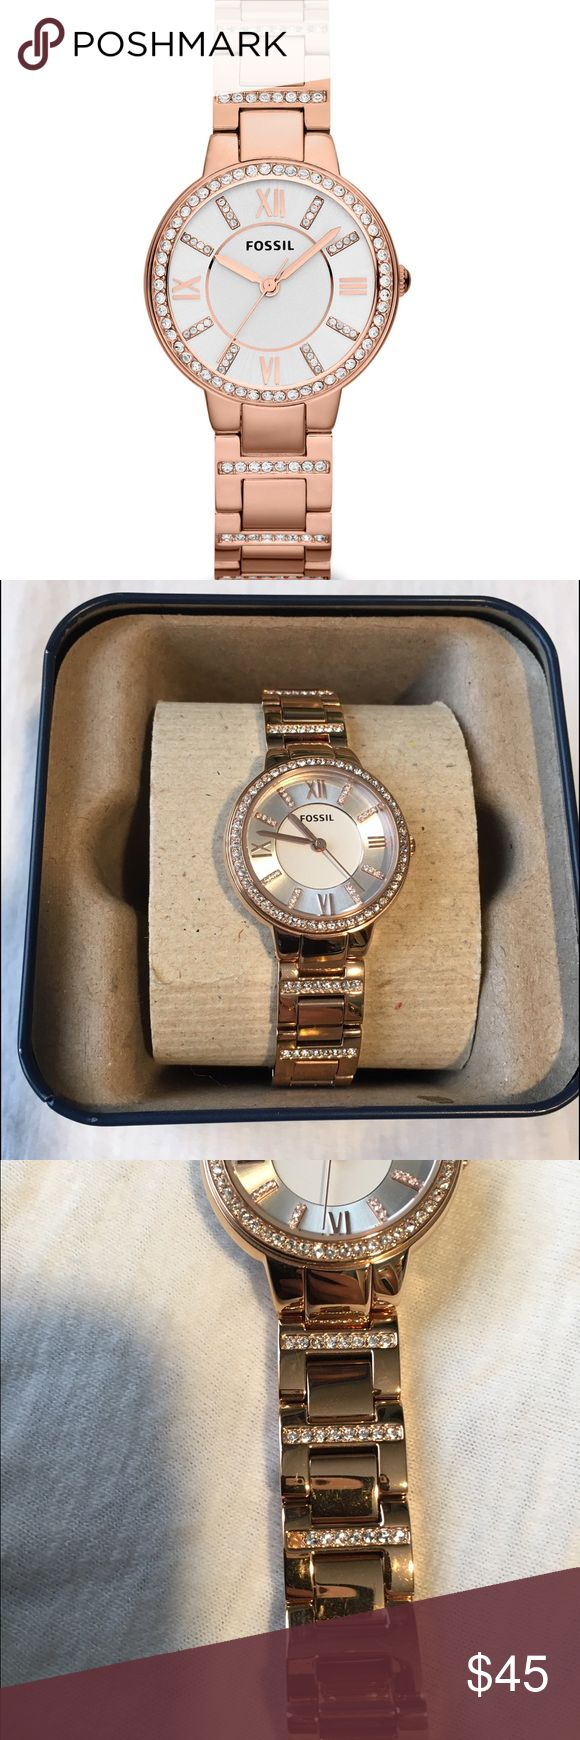 Virginia Rose Gold Fossil Watch It's like new except the dials are loose and need to be tightened. It's a cheap fix but I never got around to it. There is also one stone missing from around the band but you can't tell. I have pictures showing all the wear. It was only worn about 2 weeks. Fossil Accessories Watches